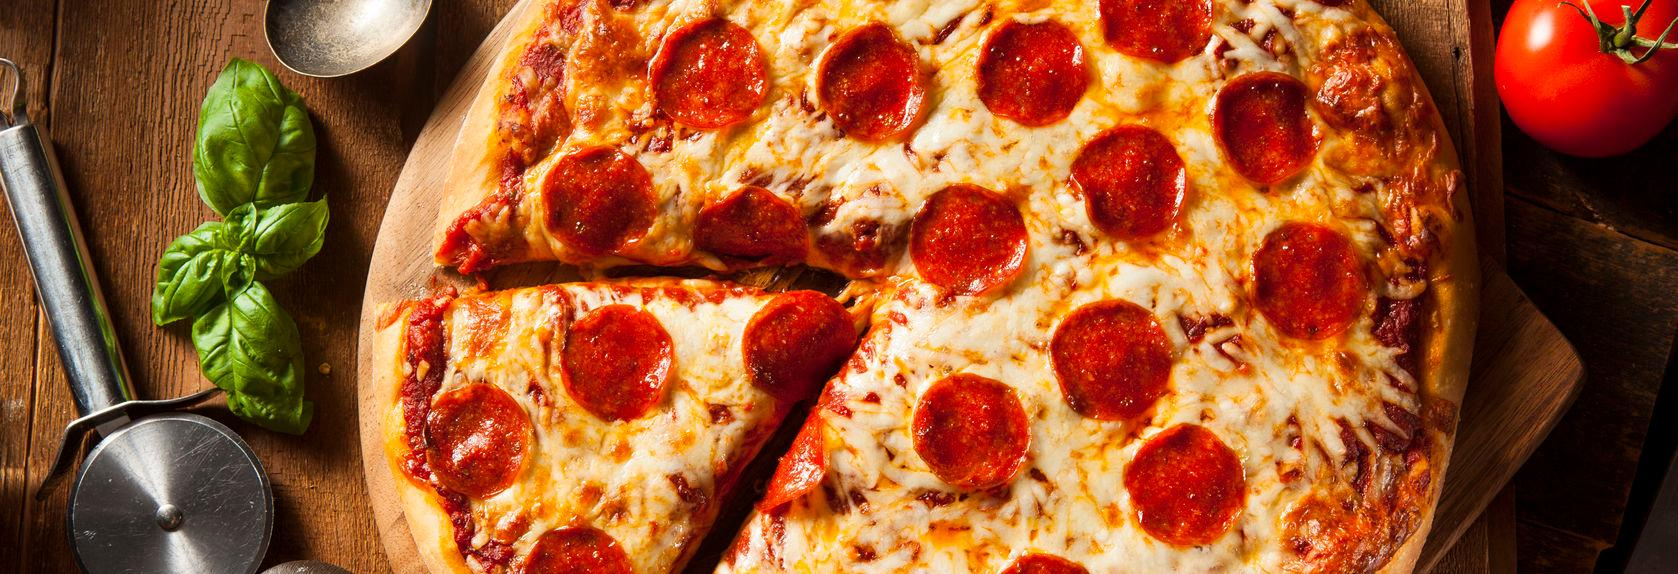 Nicolo's Chicago-Style Pizza in Lakewood banner